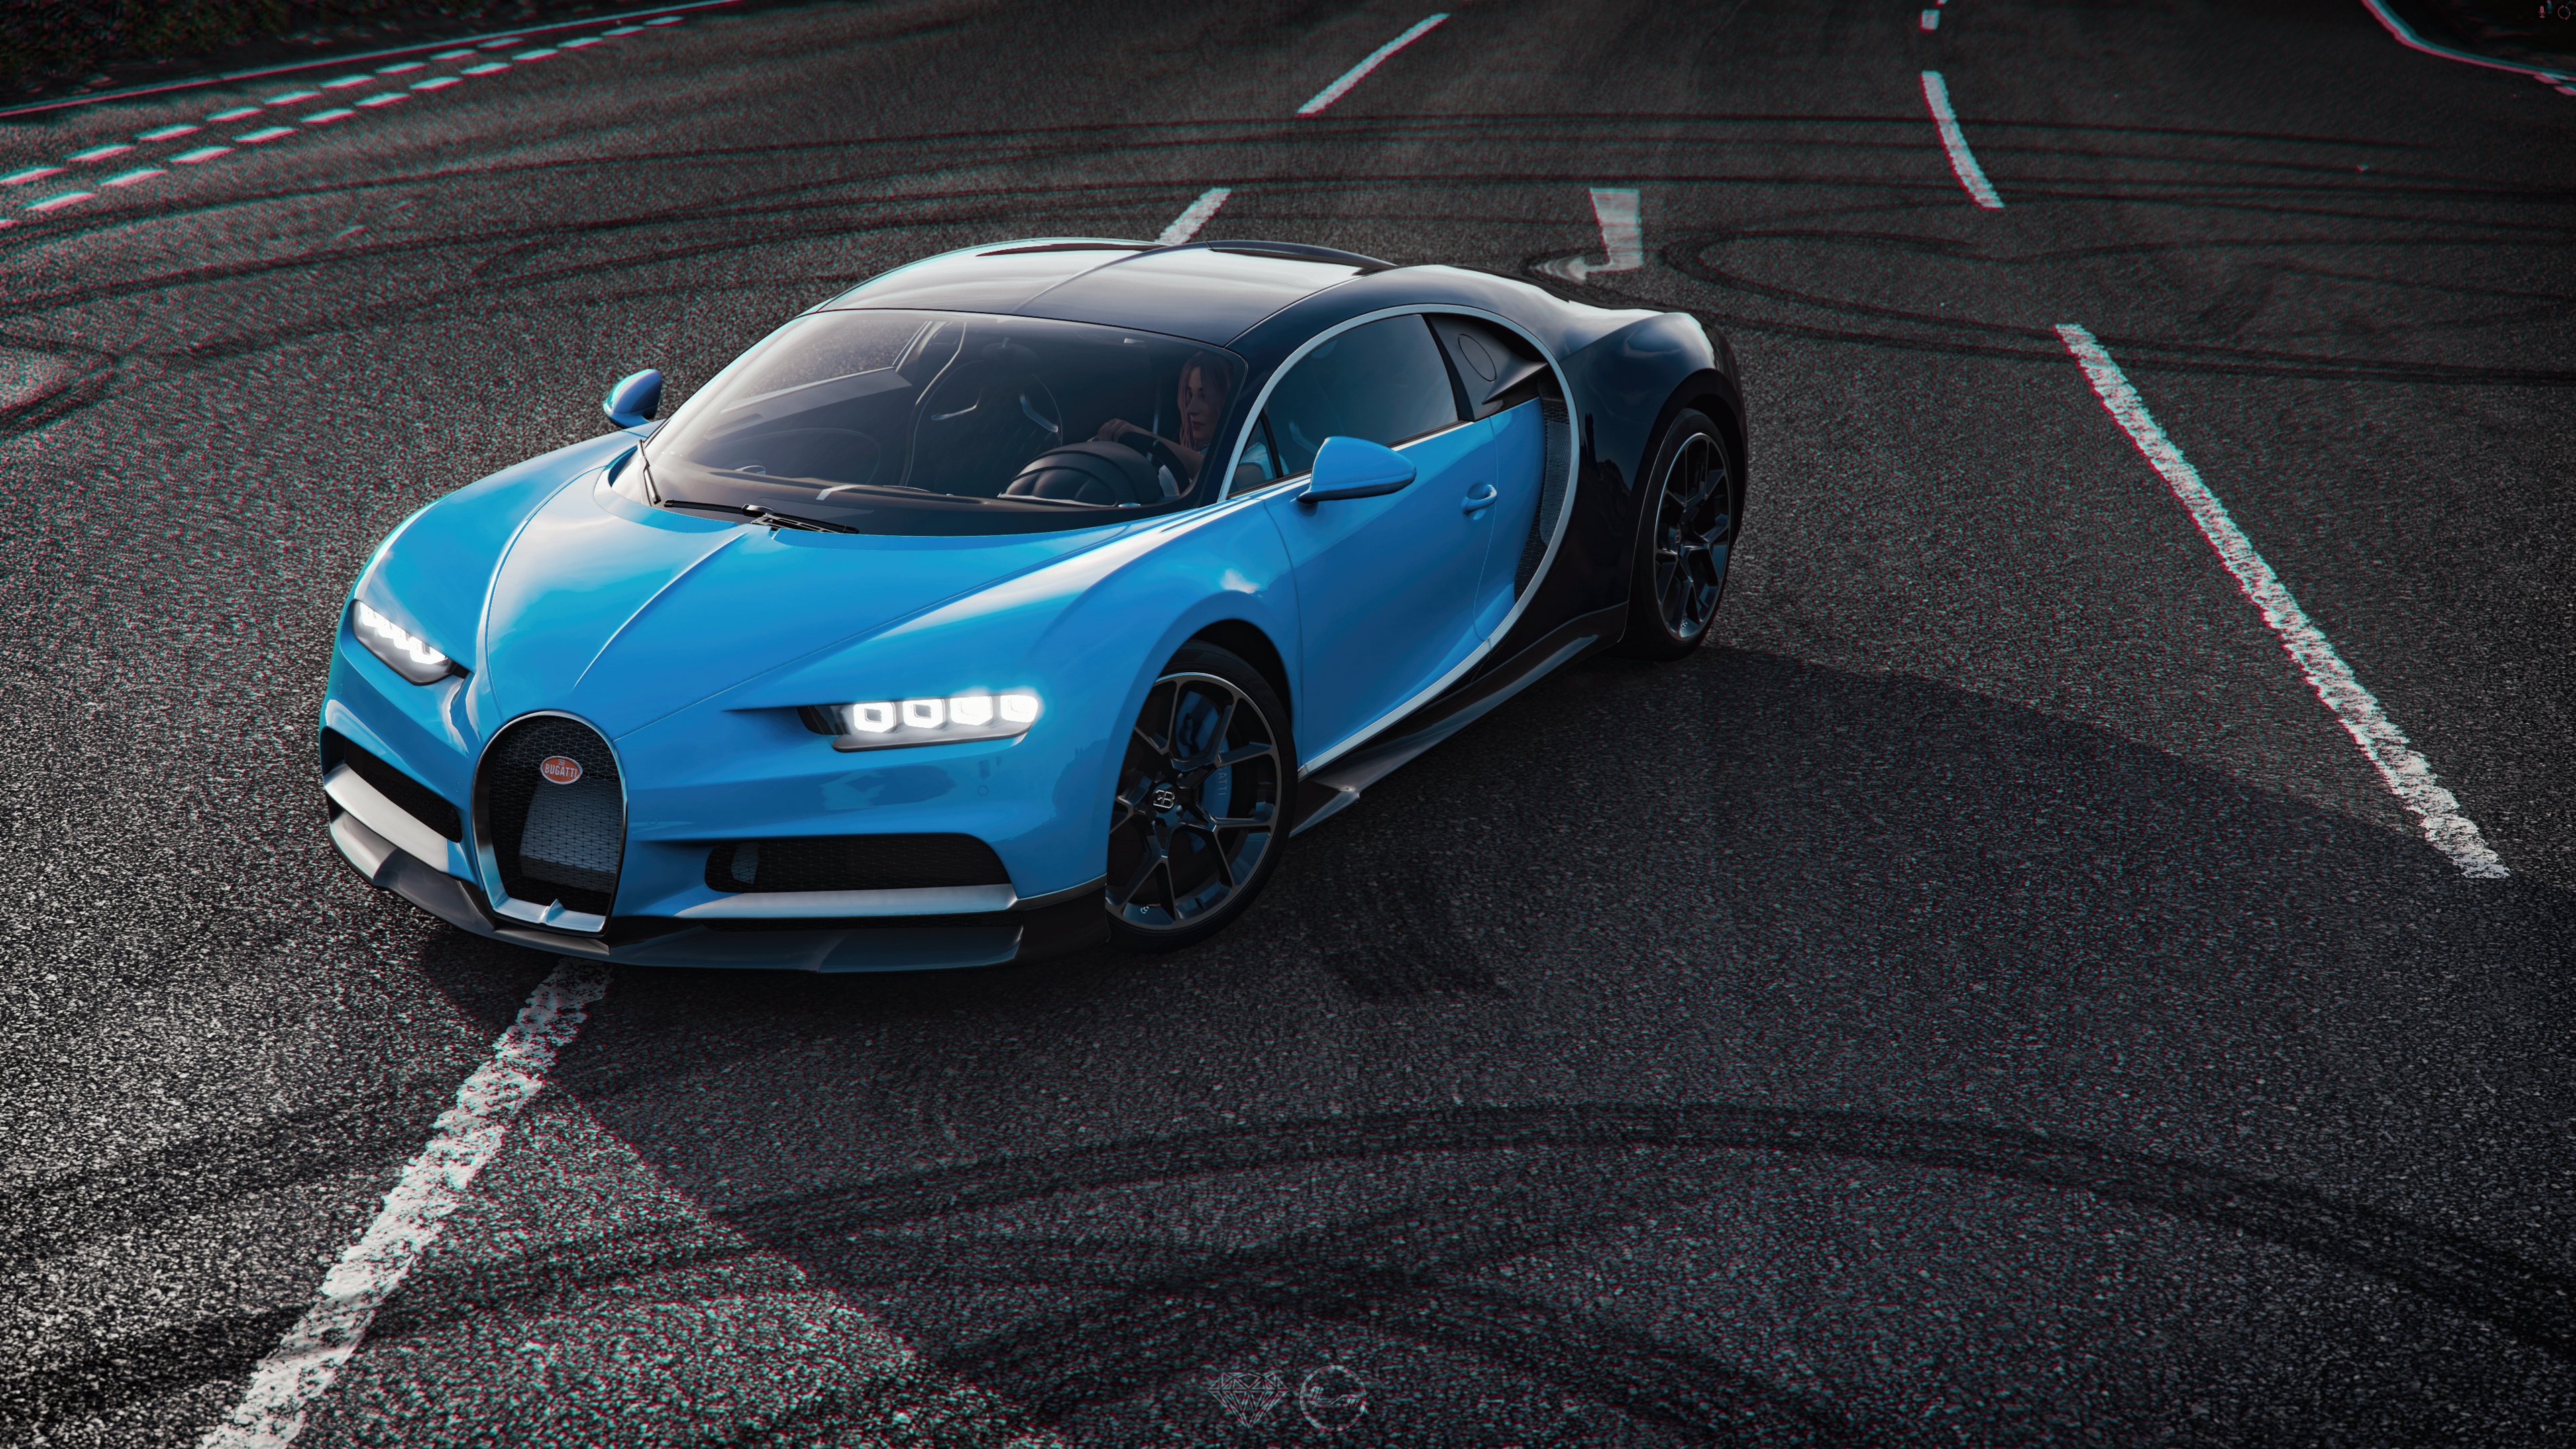 Forza Horizon 4 Bugatti Chiron 4k Hd Games 4k Wallpapers Images Backgrounds Photos And Pictures